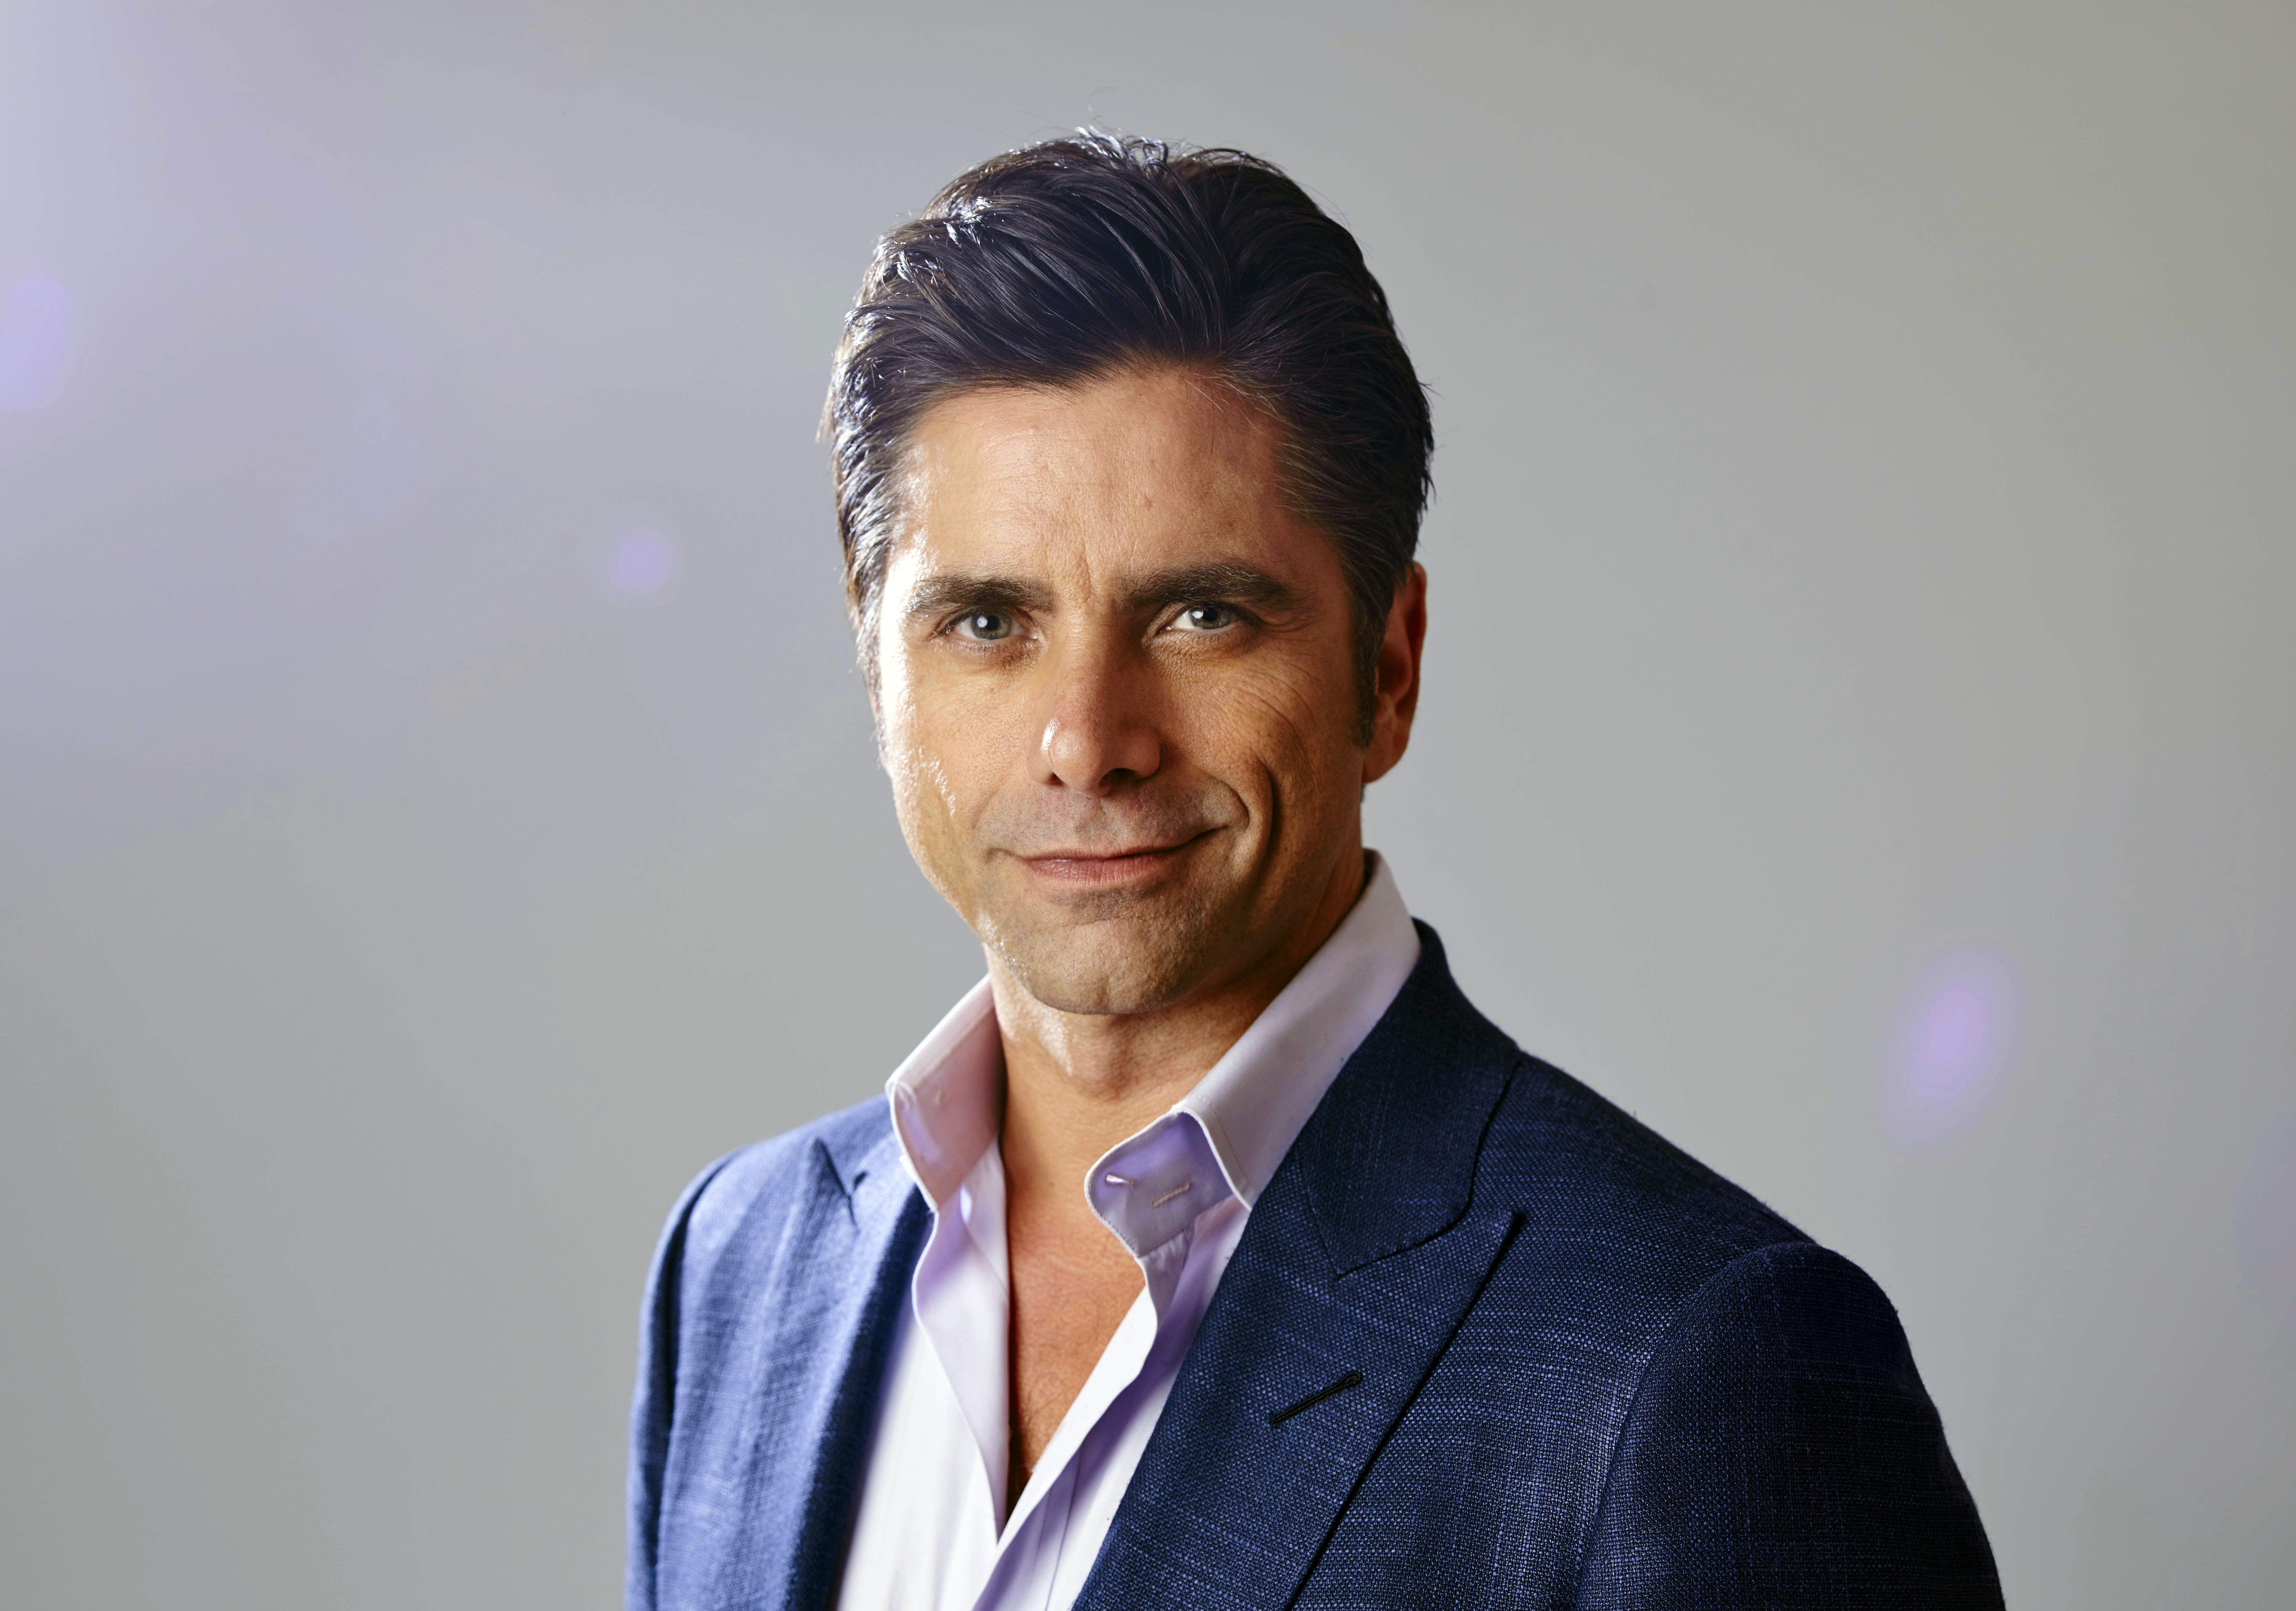 John Stamos, Beach Boys to headline July 4 concert in DC